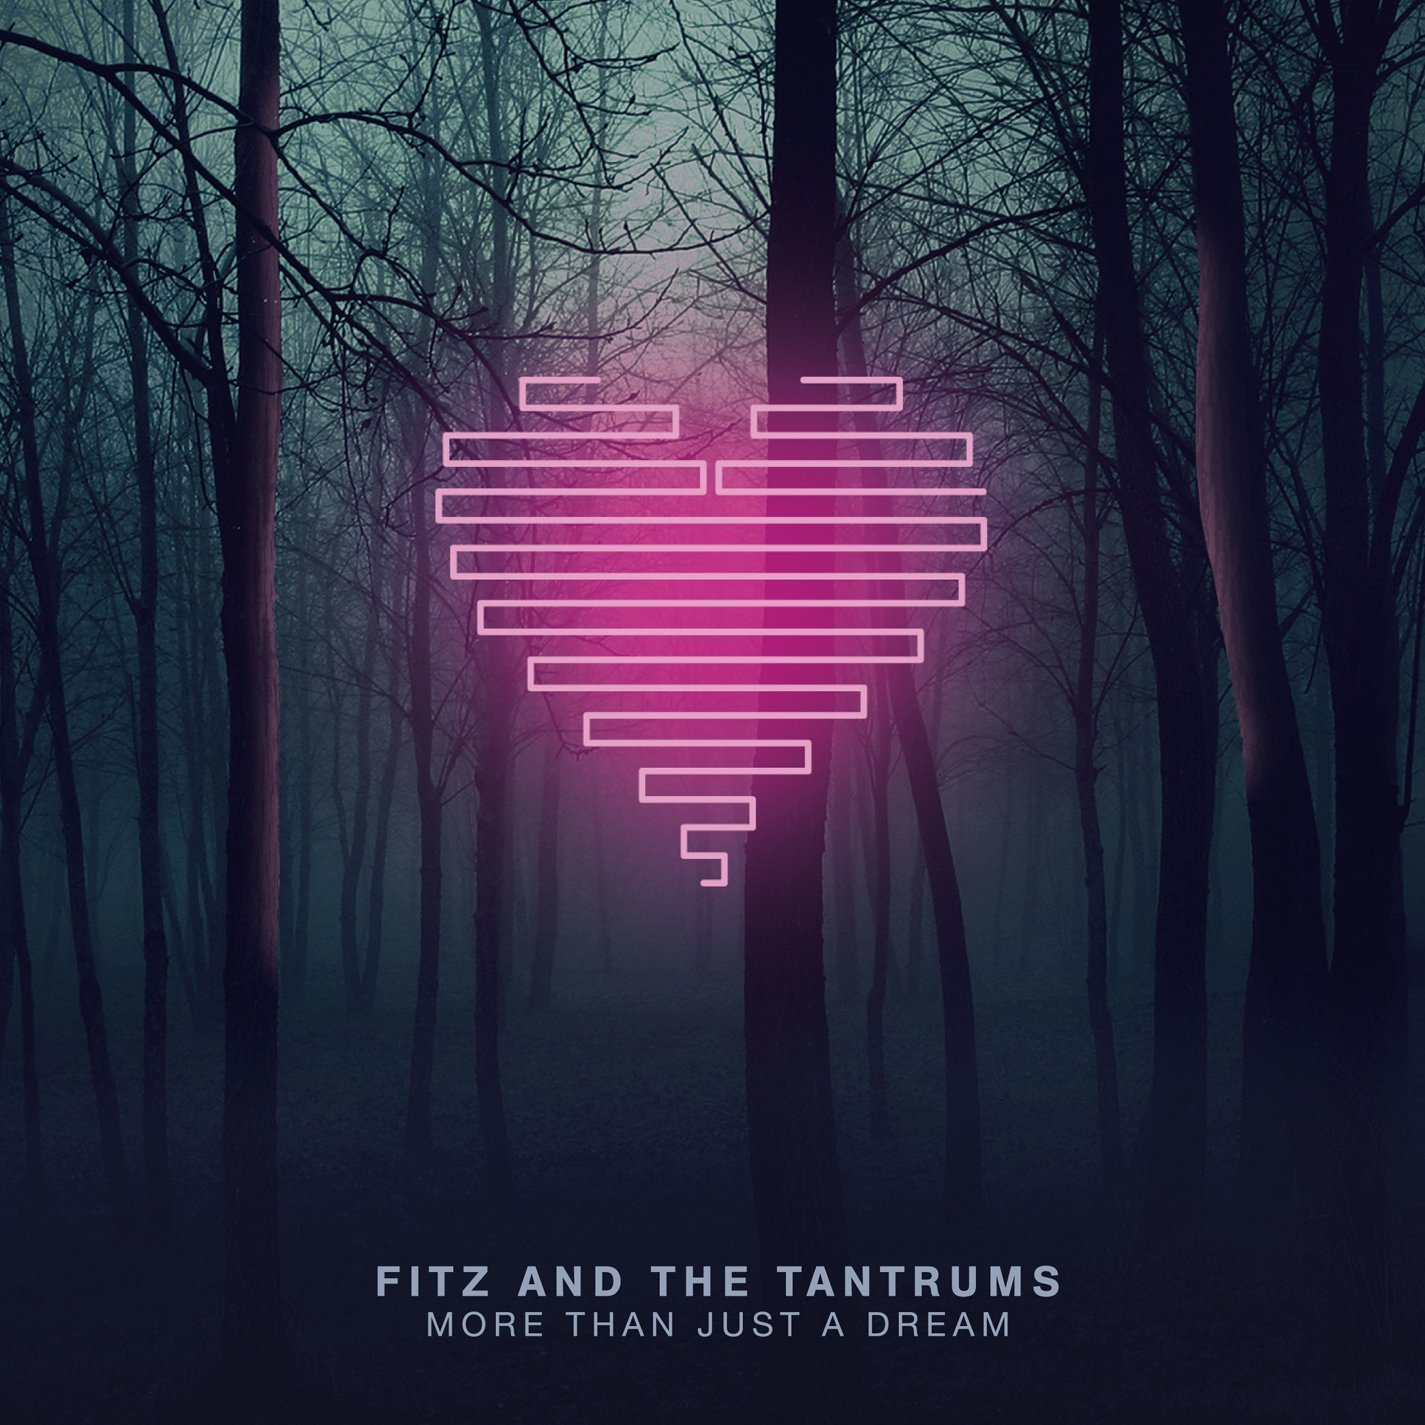 fitz and the tantrums - more than just a dream 2013